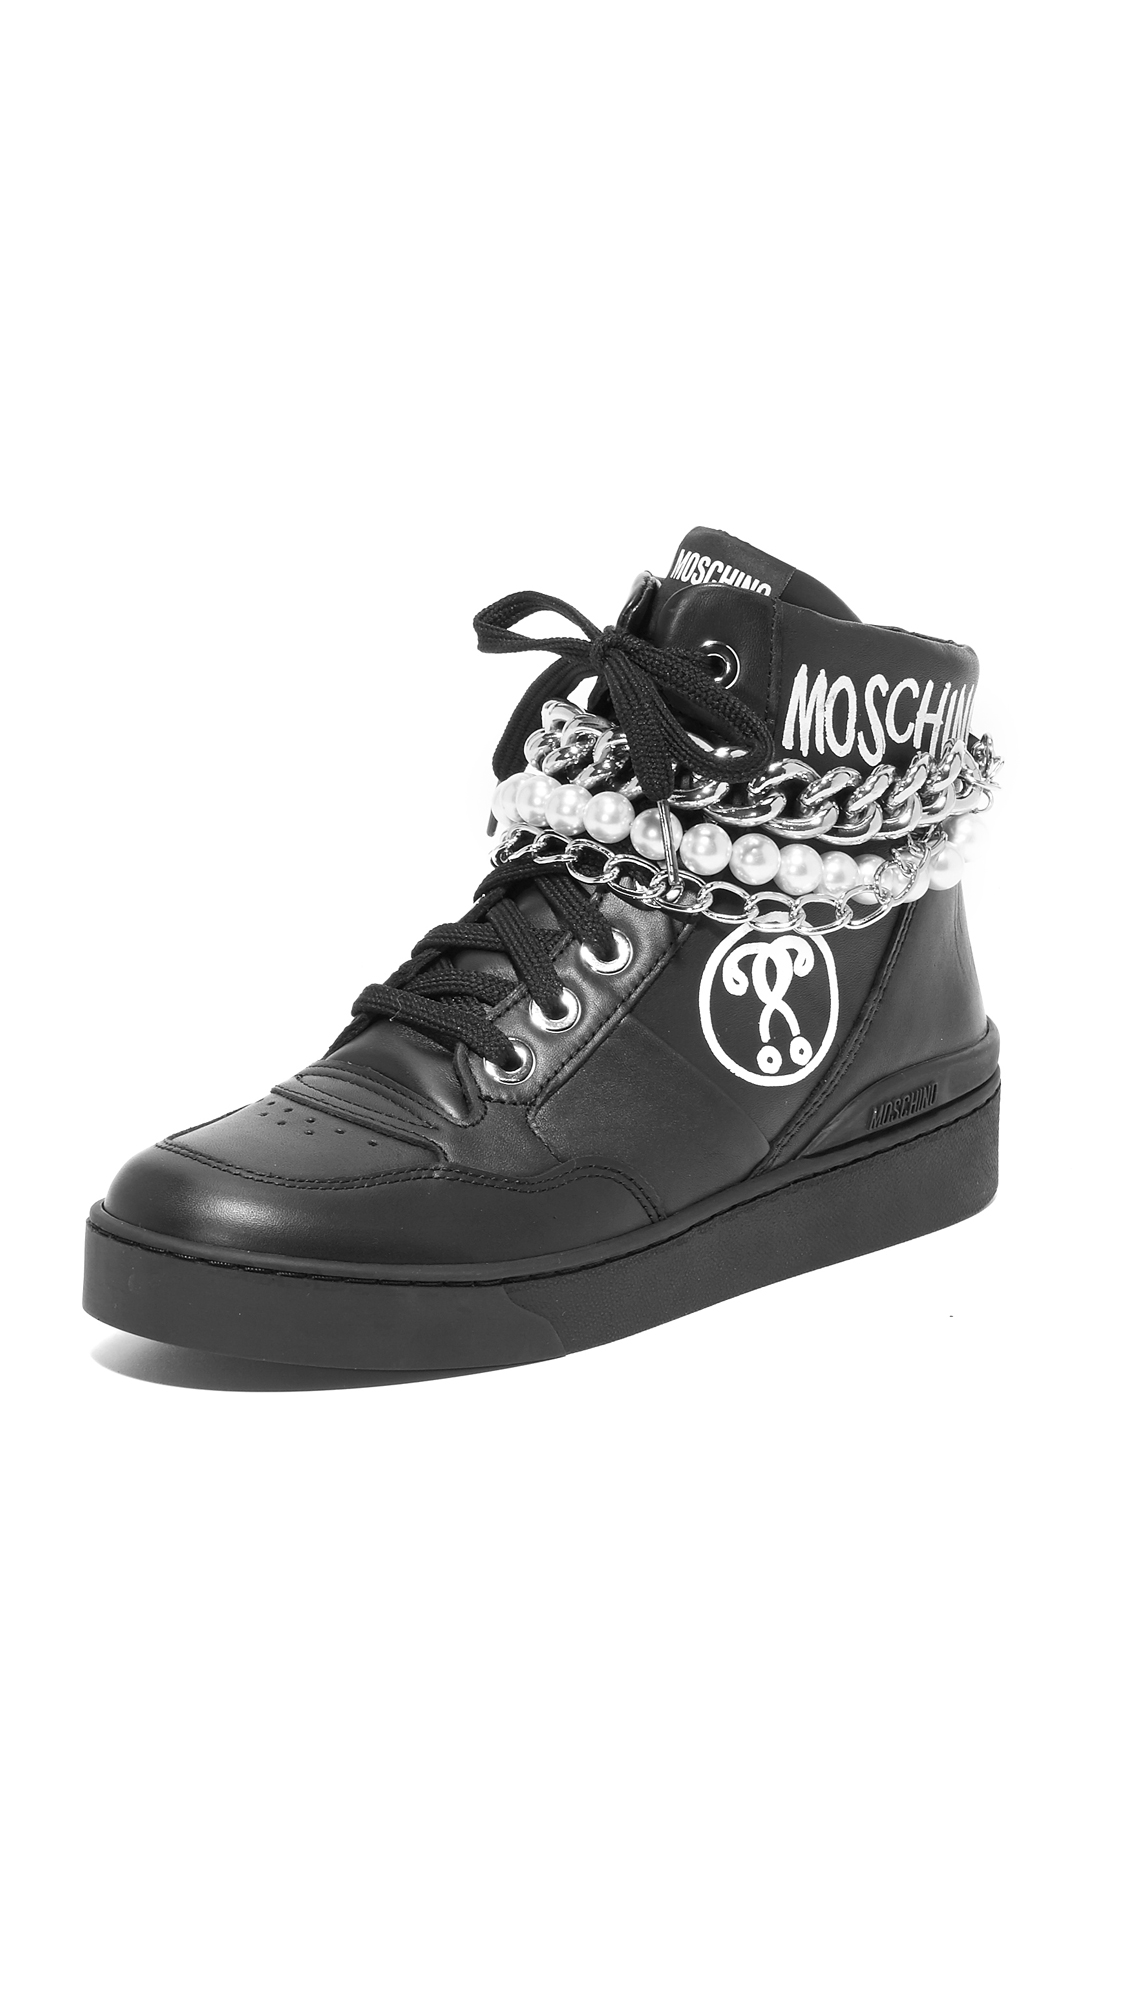 Polished chains and imitation pearls accent the cuff of these high top Moschino sneakers. Contrast logo graphics accent the sides. Lace up closure and rubber sole. Leather: Calfskin. Made in Italy. Measurements Platform: 1in / 25mm. Available